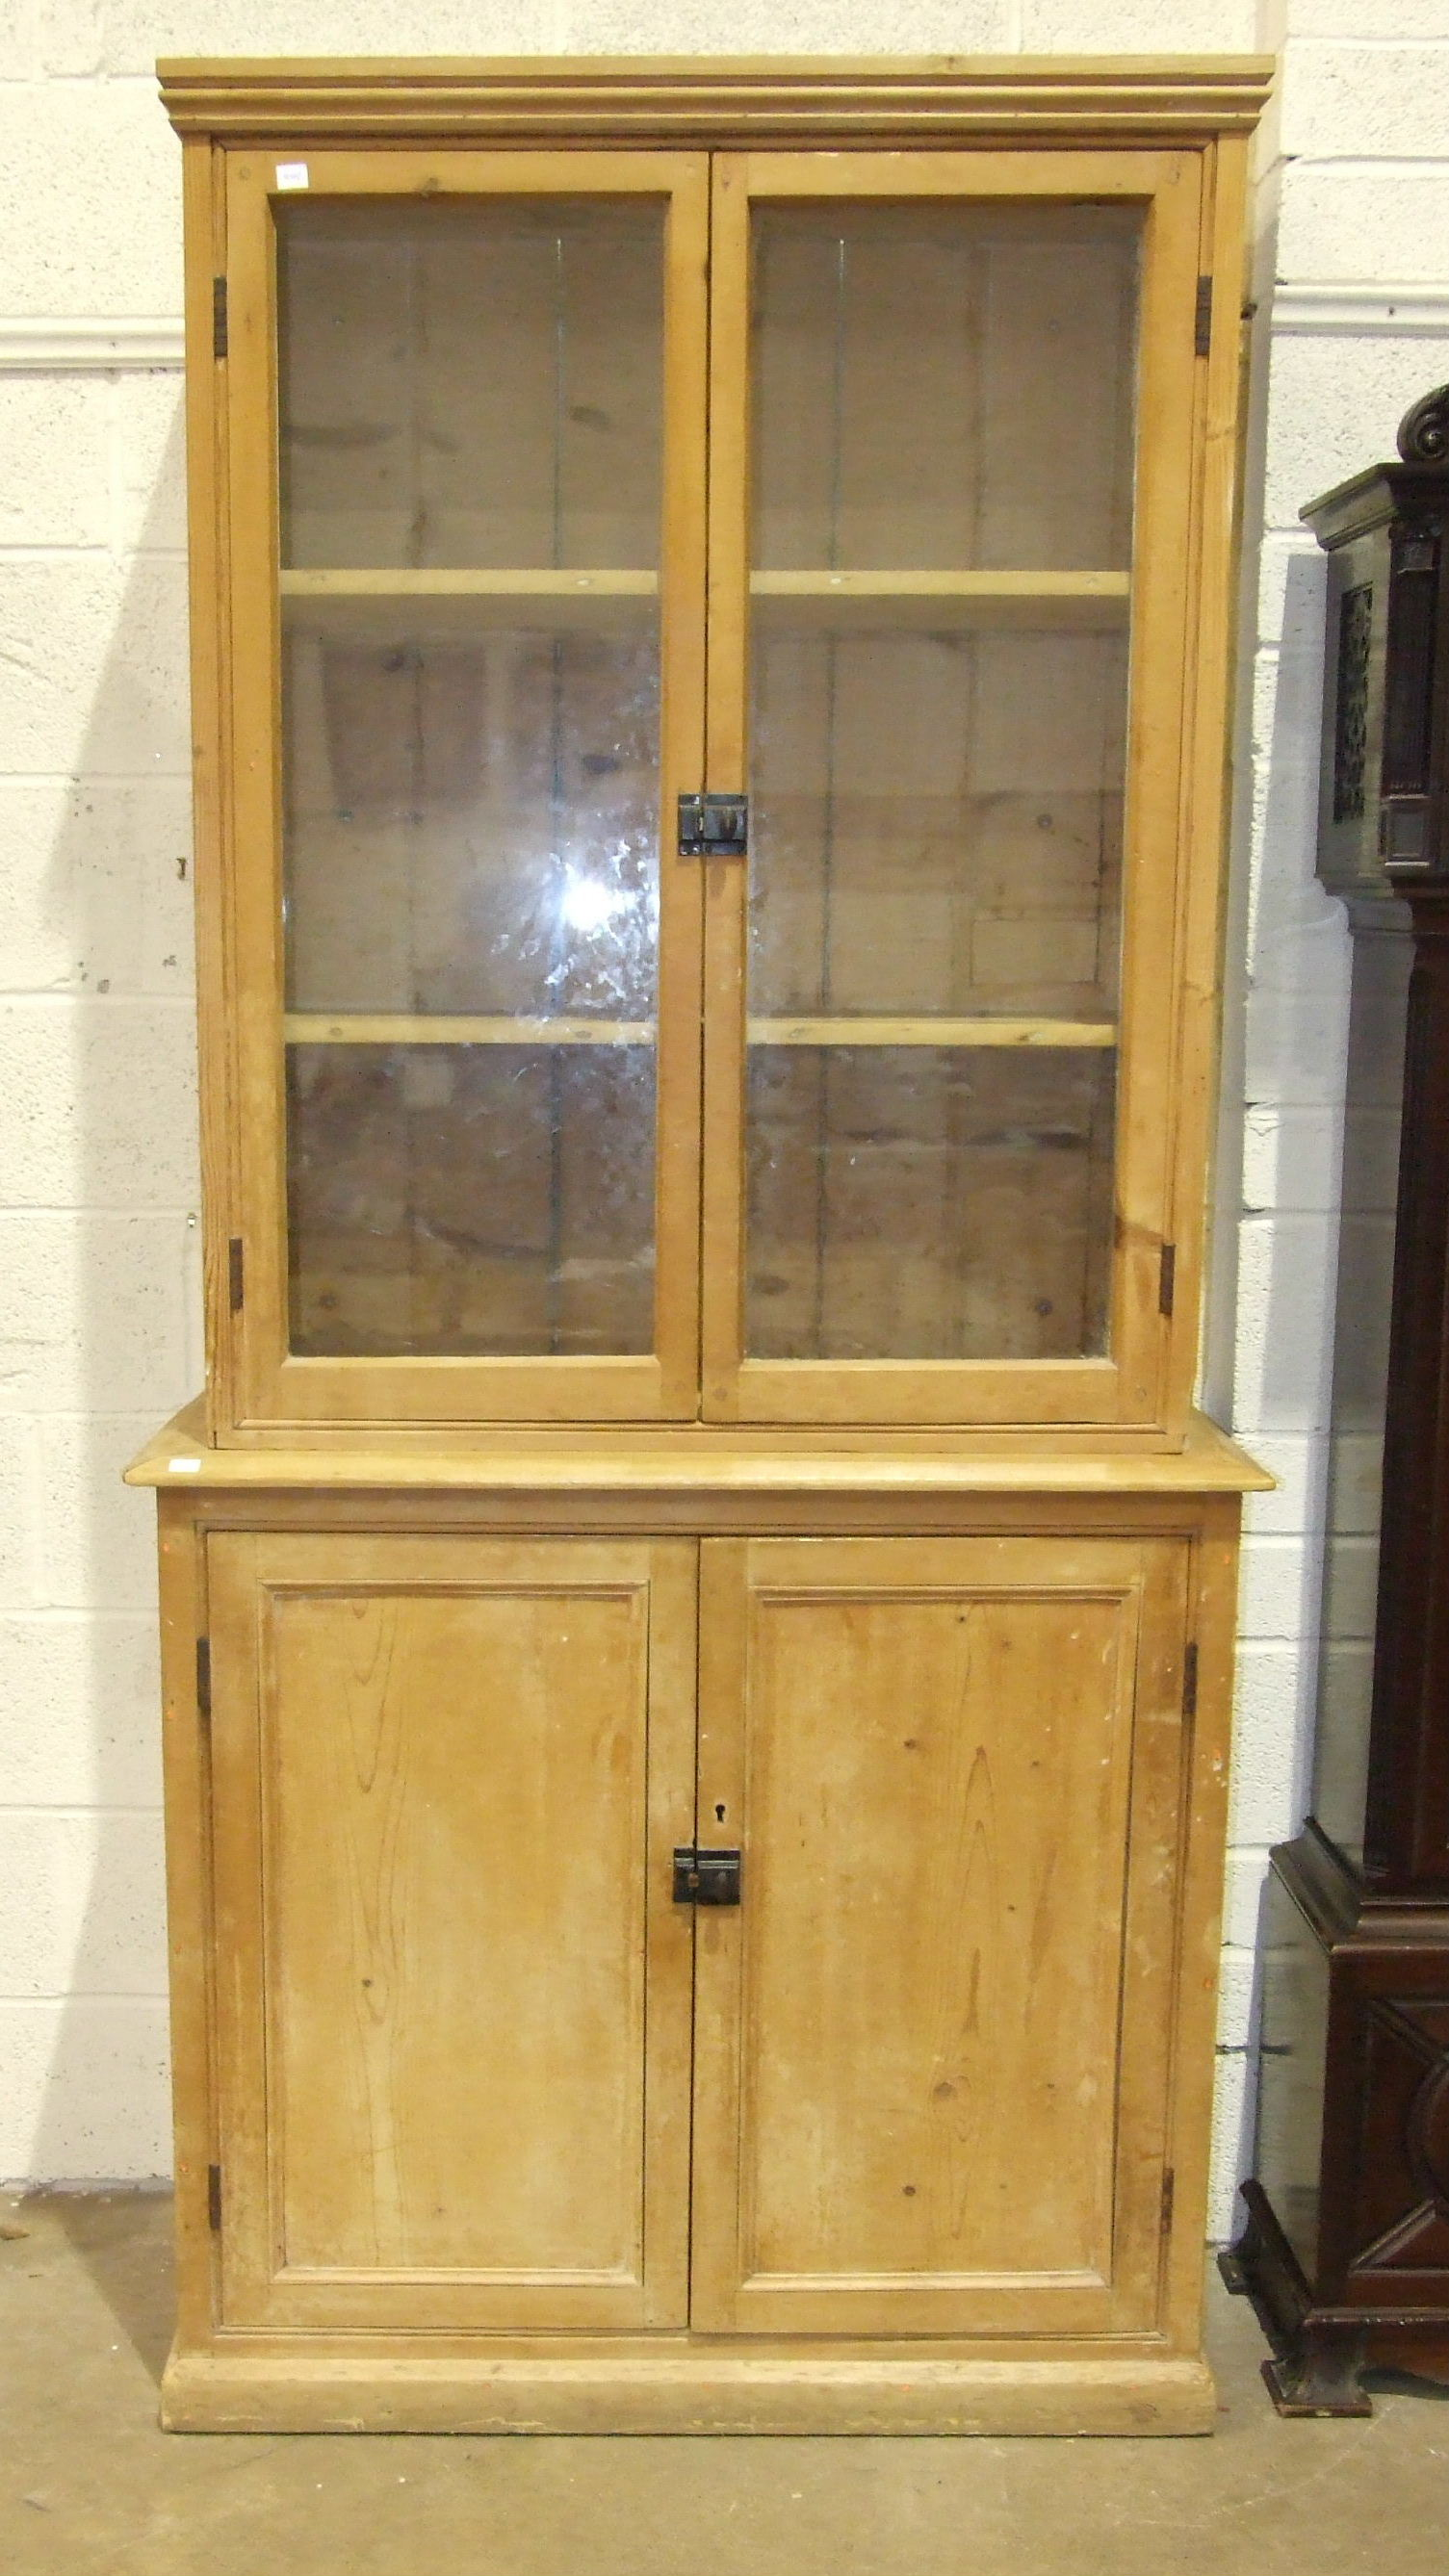 Lot 2 - A pine dresser, the upper section fitted with a pair of glazed doors above a two-door base, 95cm